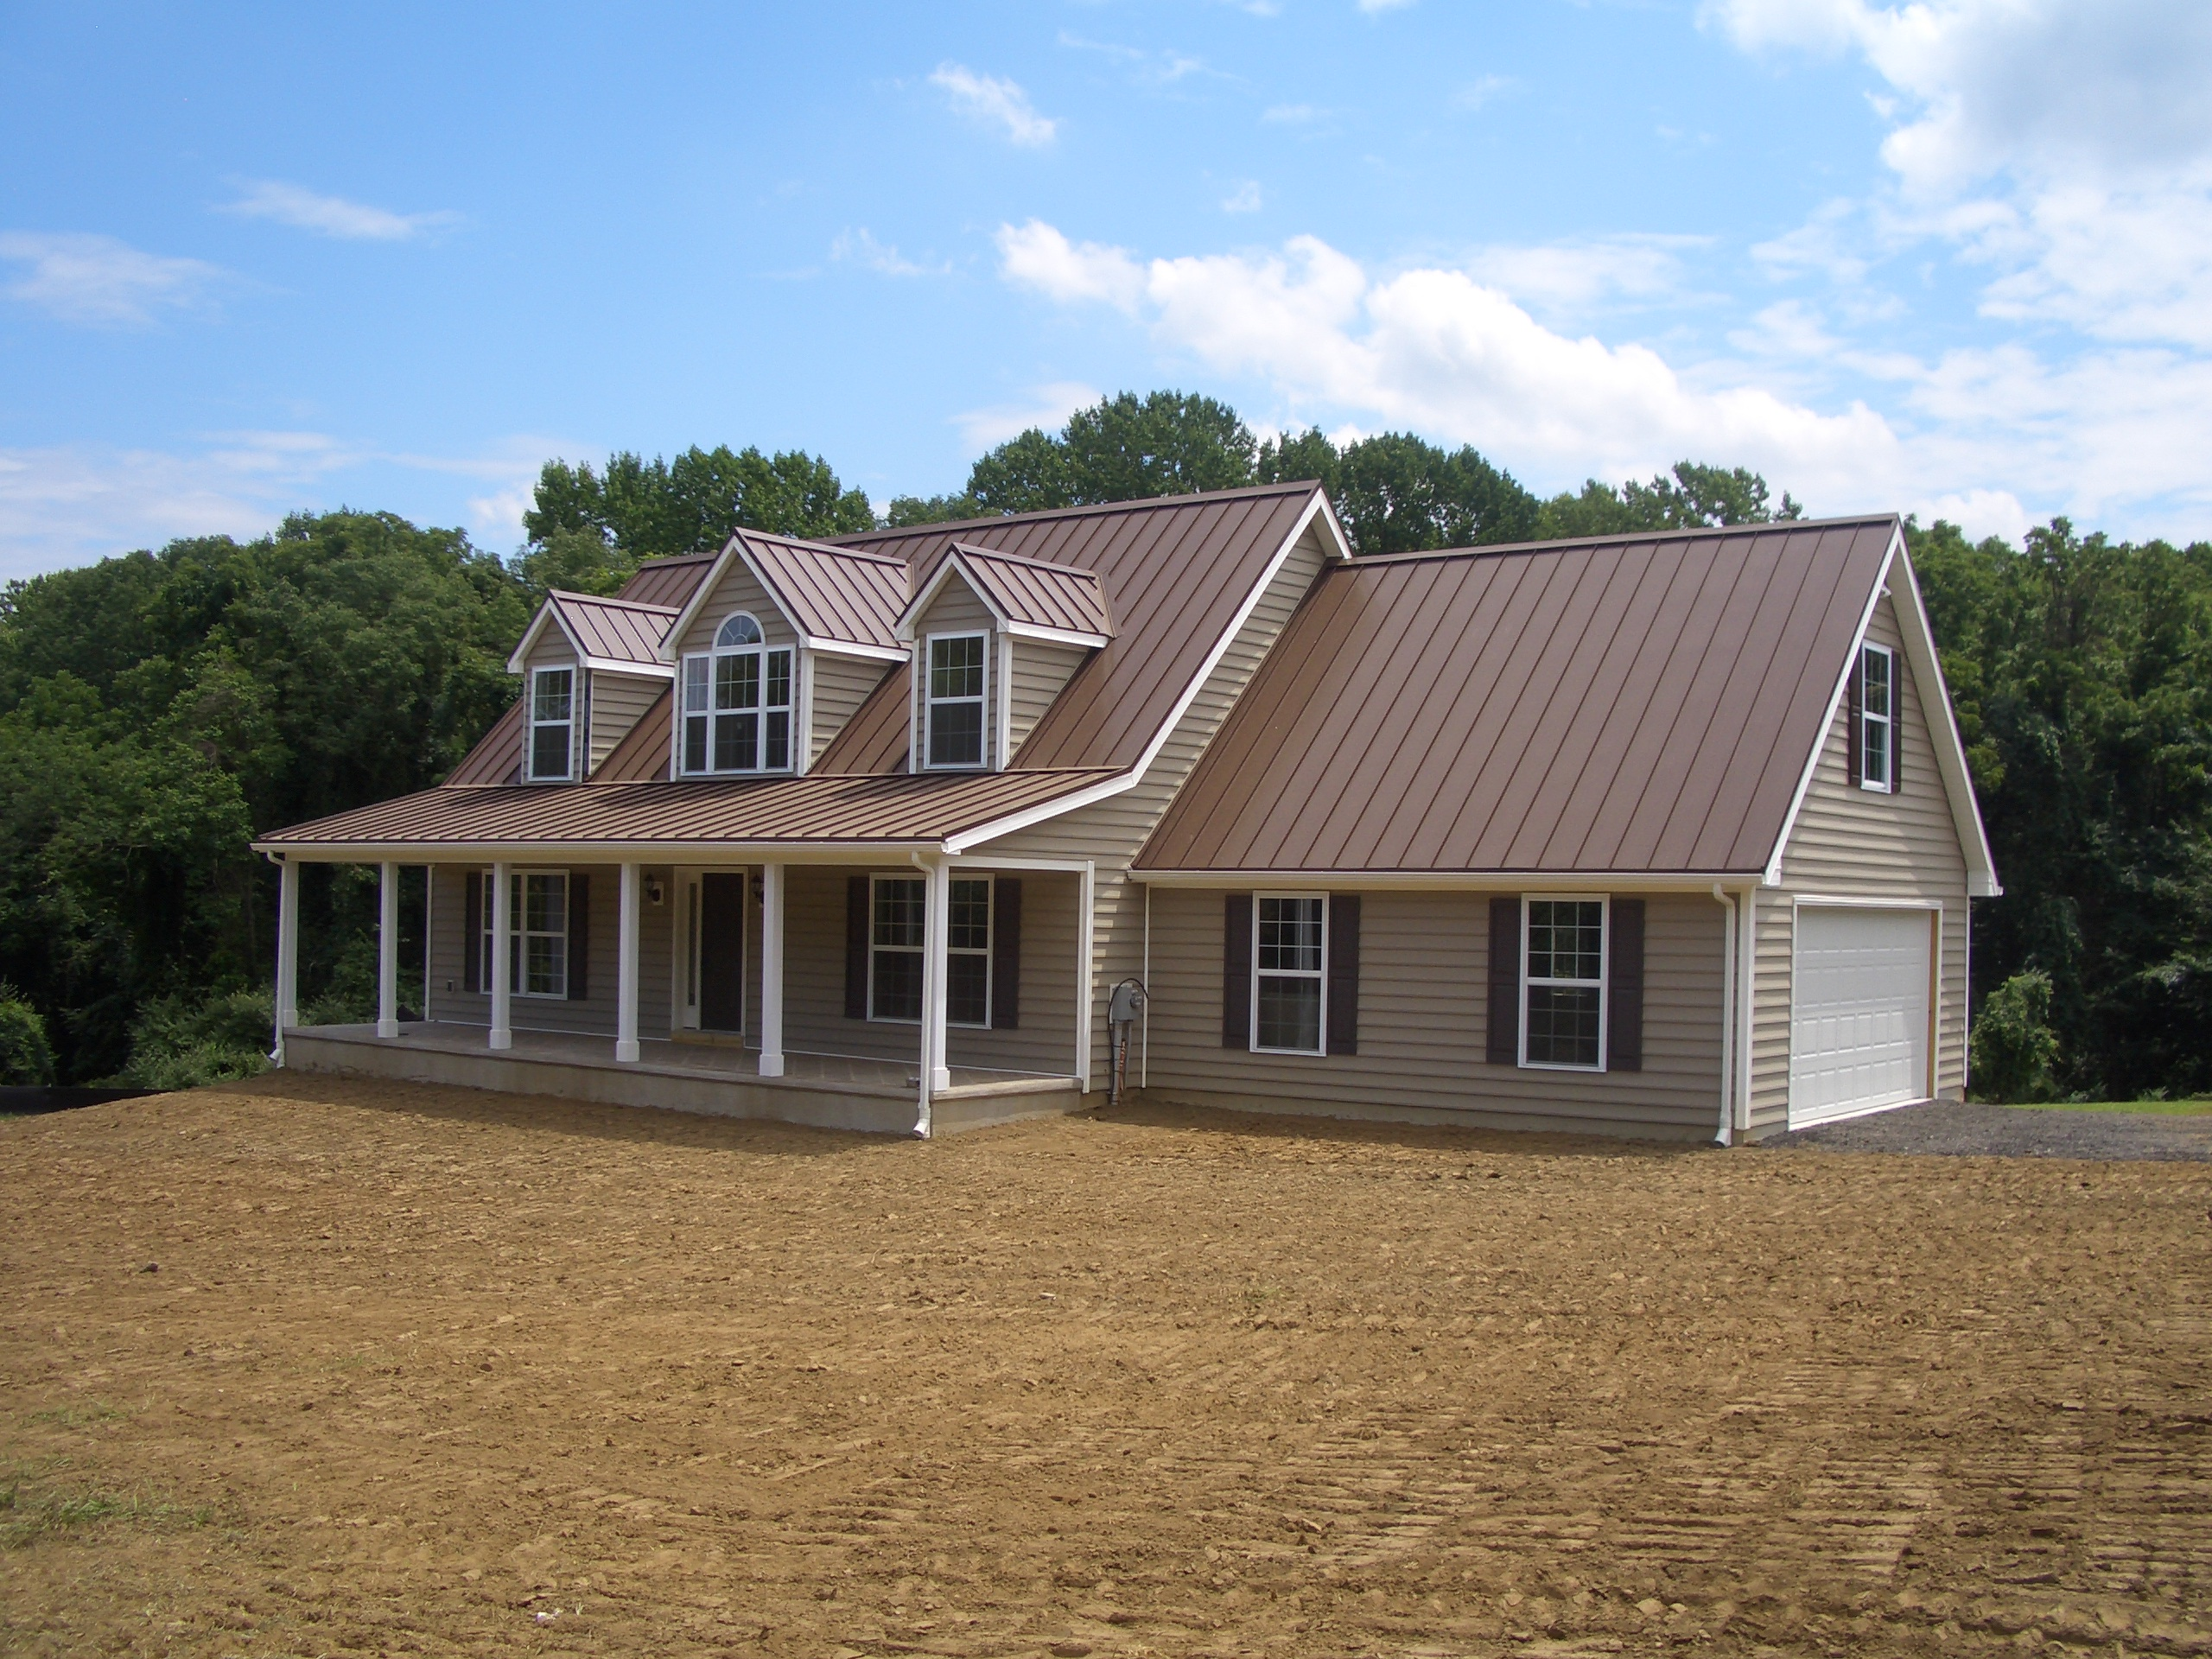 Ecodesigncenter certified green in chadds ford pa for Unibilt homes pricing